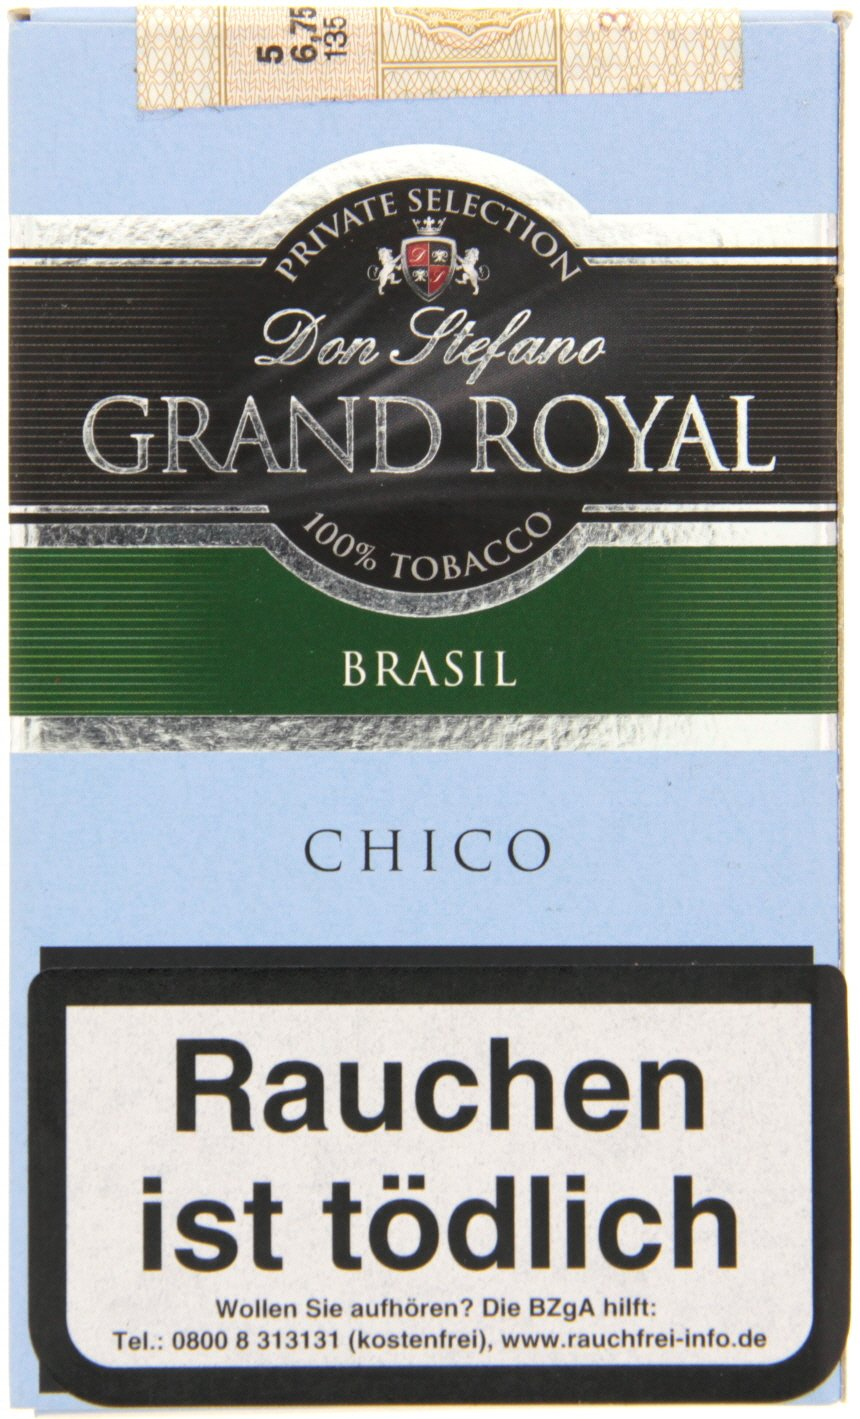 Don Stefano Grand Royal Chico Brasil